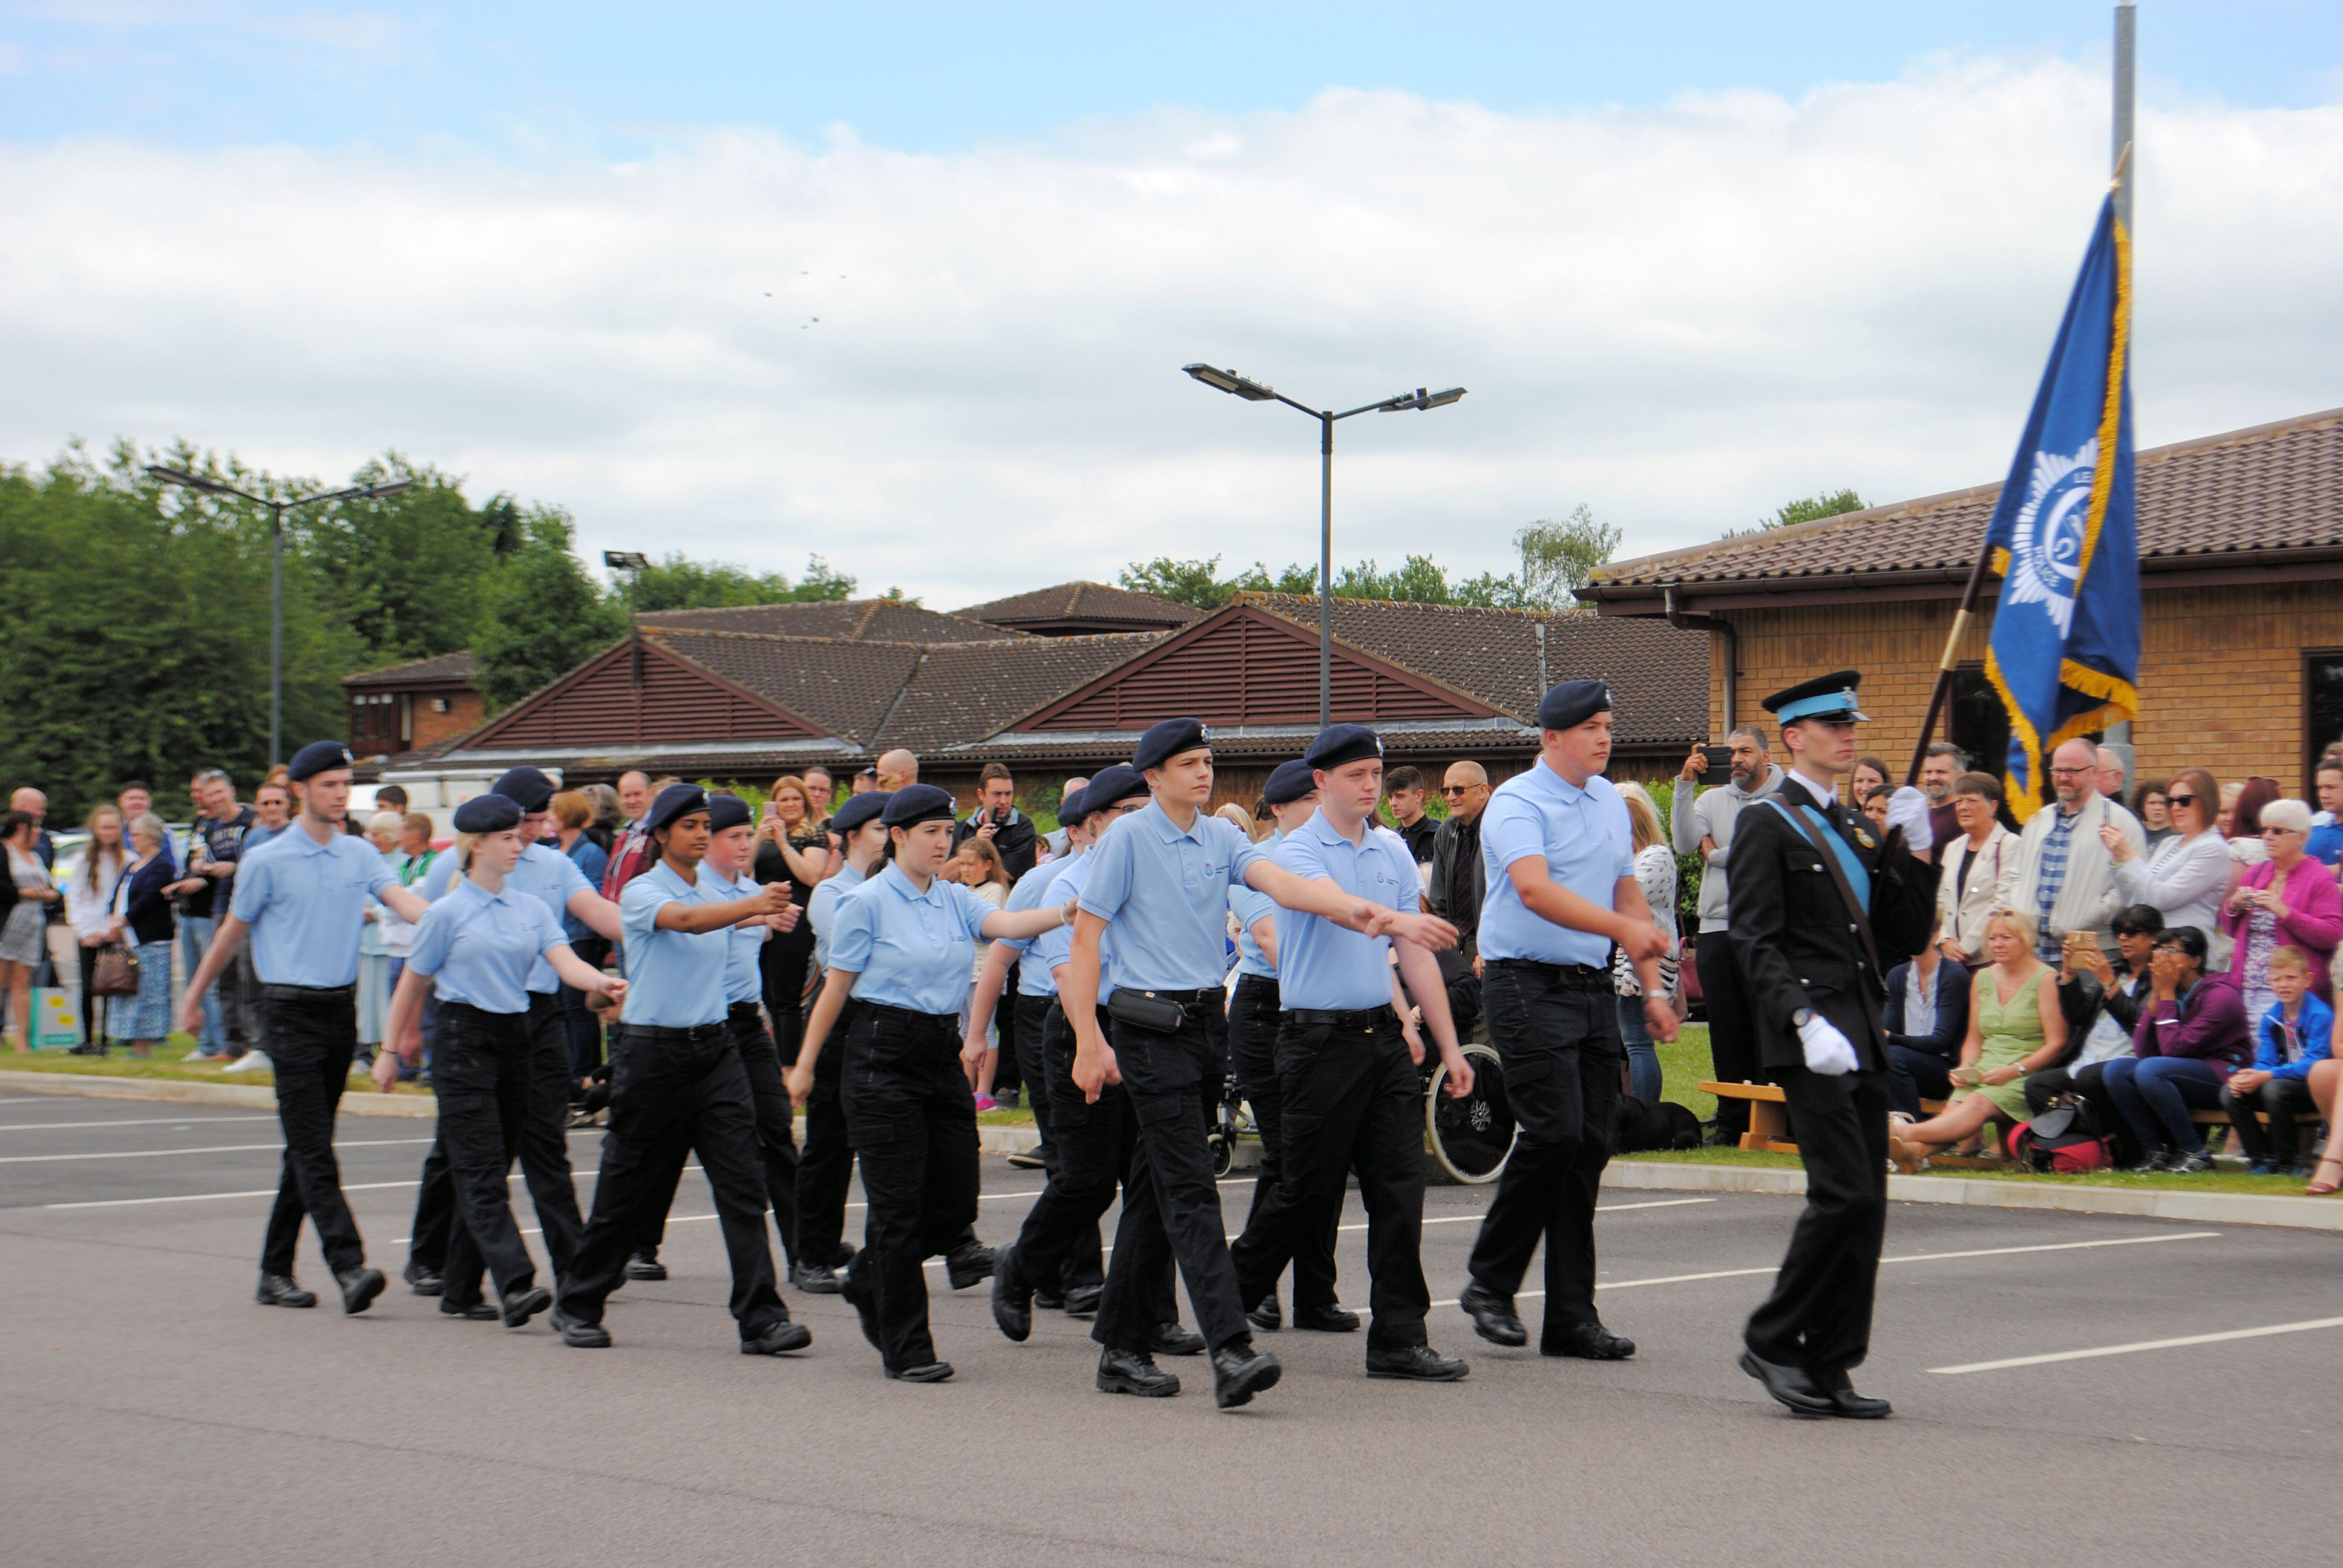 Police Cadet parade ends programme year in style